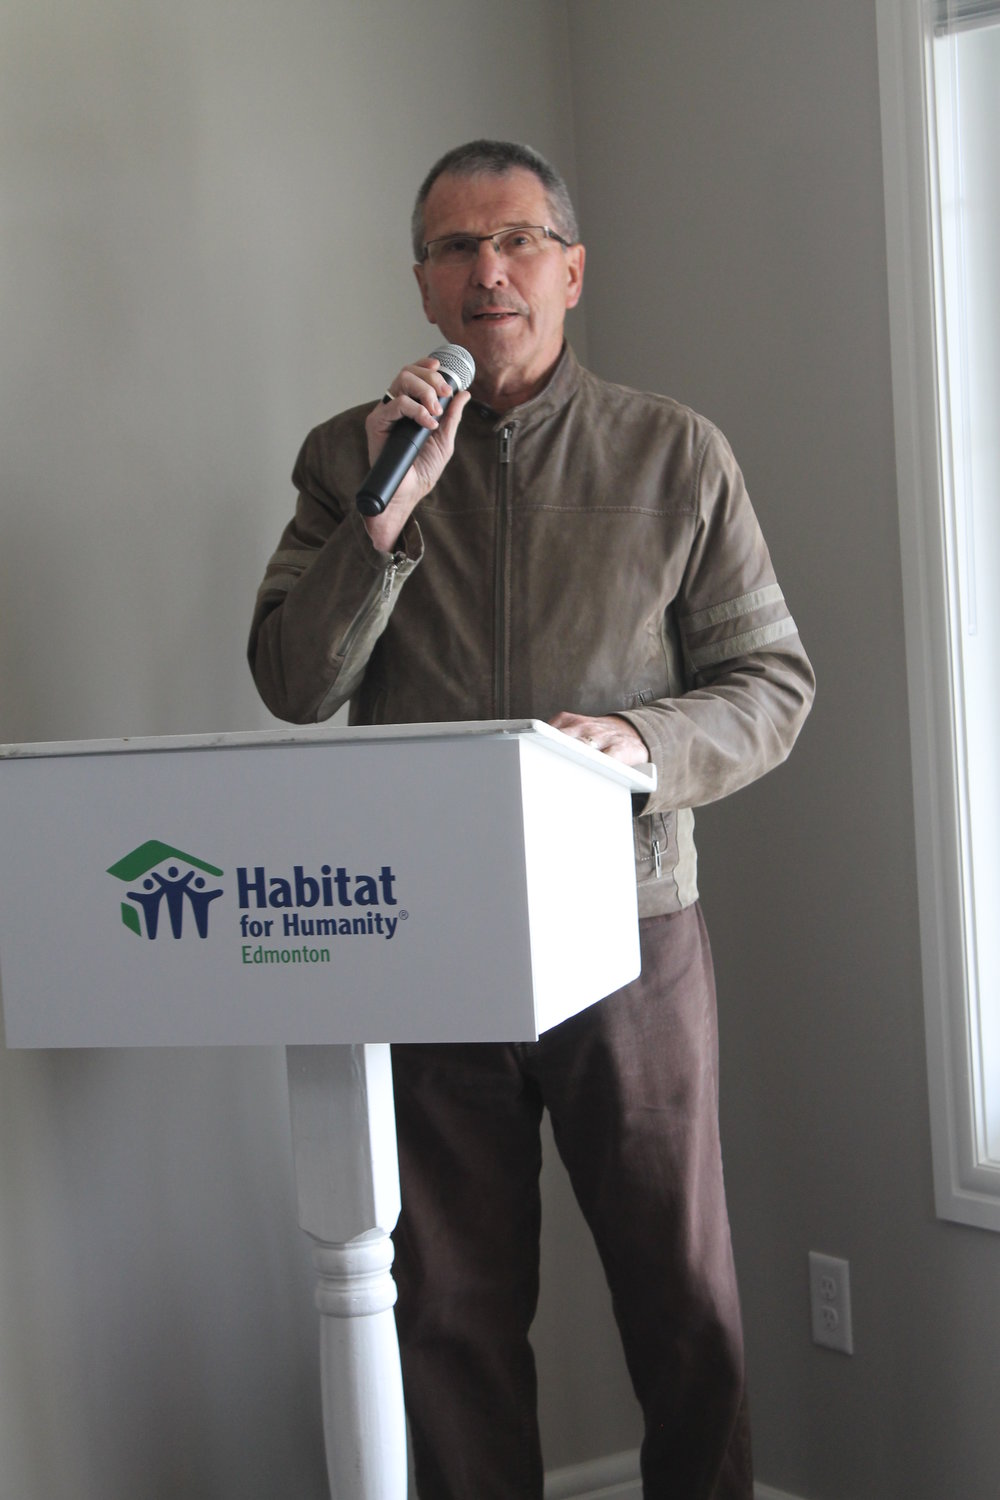 September 29th Speaking at a second Habitat for Humanity event.